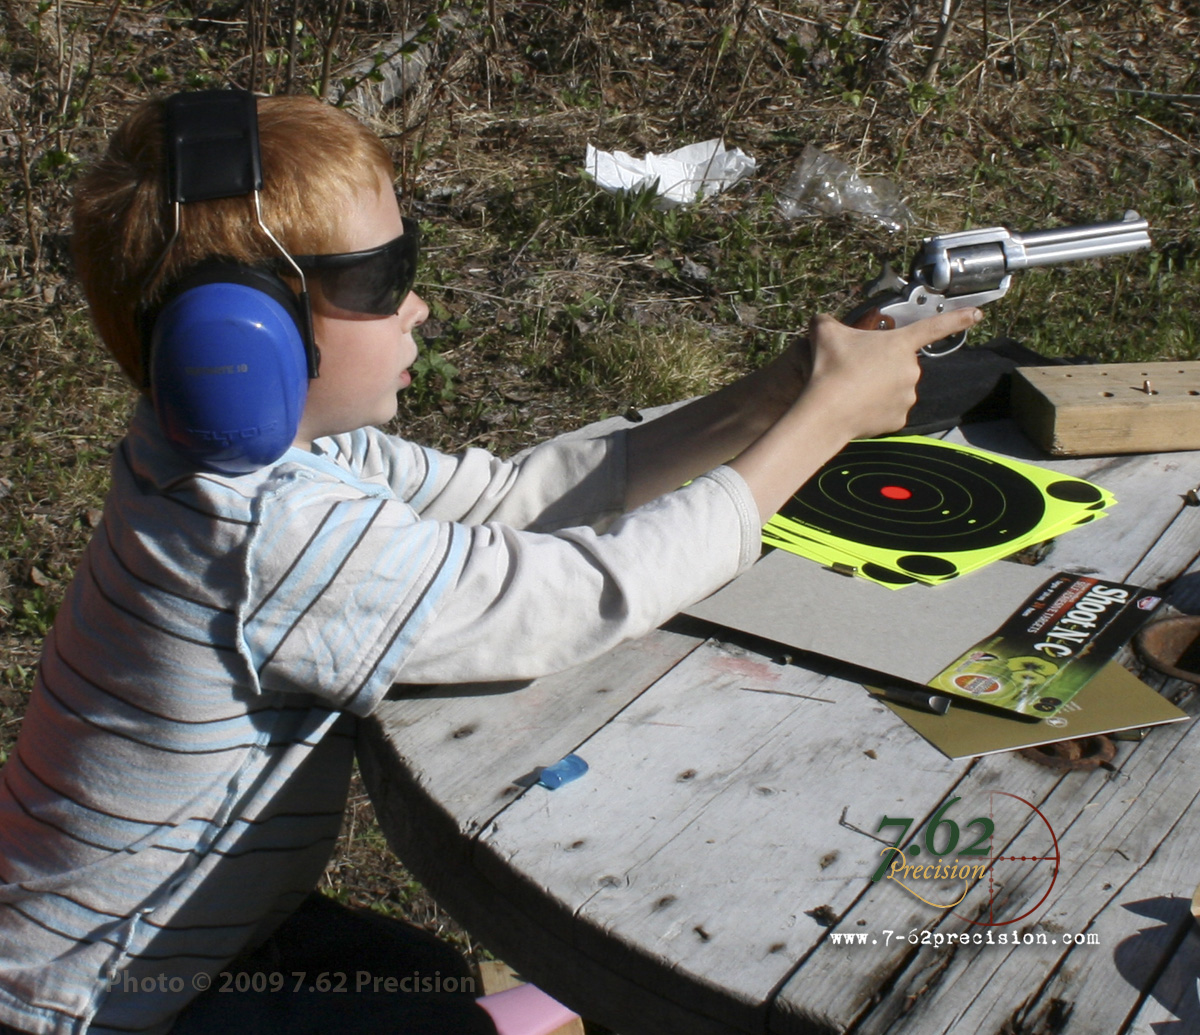 With its perfect blend of balance, size, and simplicity, the Ruger Bearcat .22 LR revolver is an ideal first pistol for a child. The bear and puma rollmark on the cylinder is popular with children.